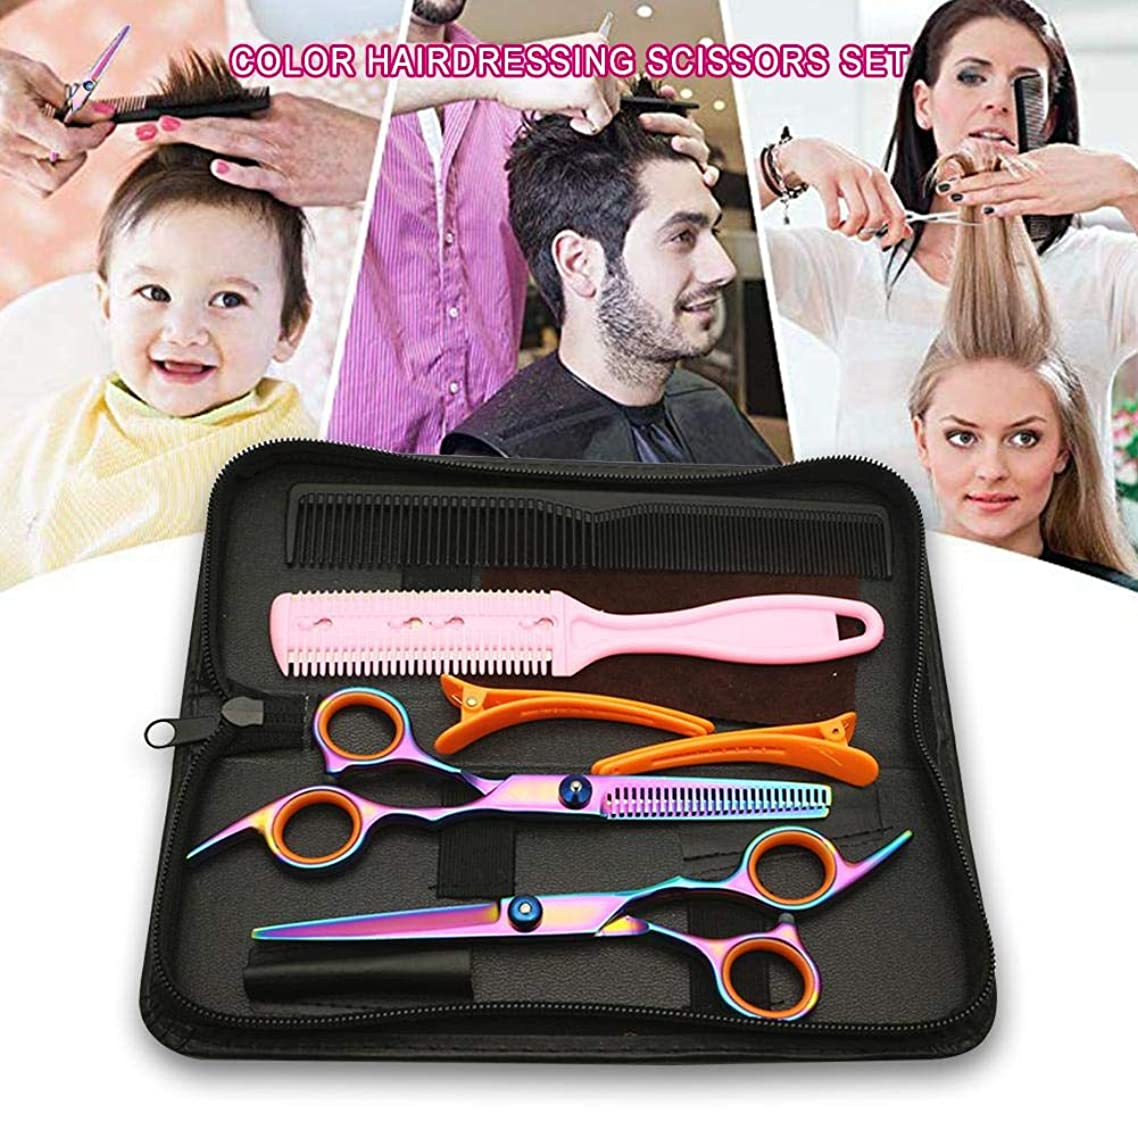 Bulary Colored Hairdressing Scissors Set,Household Professional Hair Cutting Shears Set with Hairdressing Tools Carrying Case